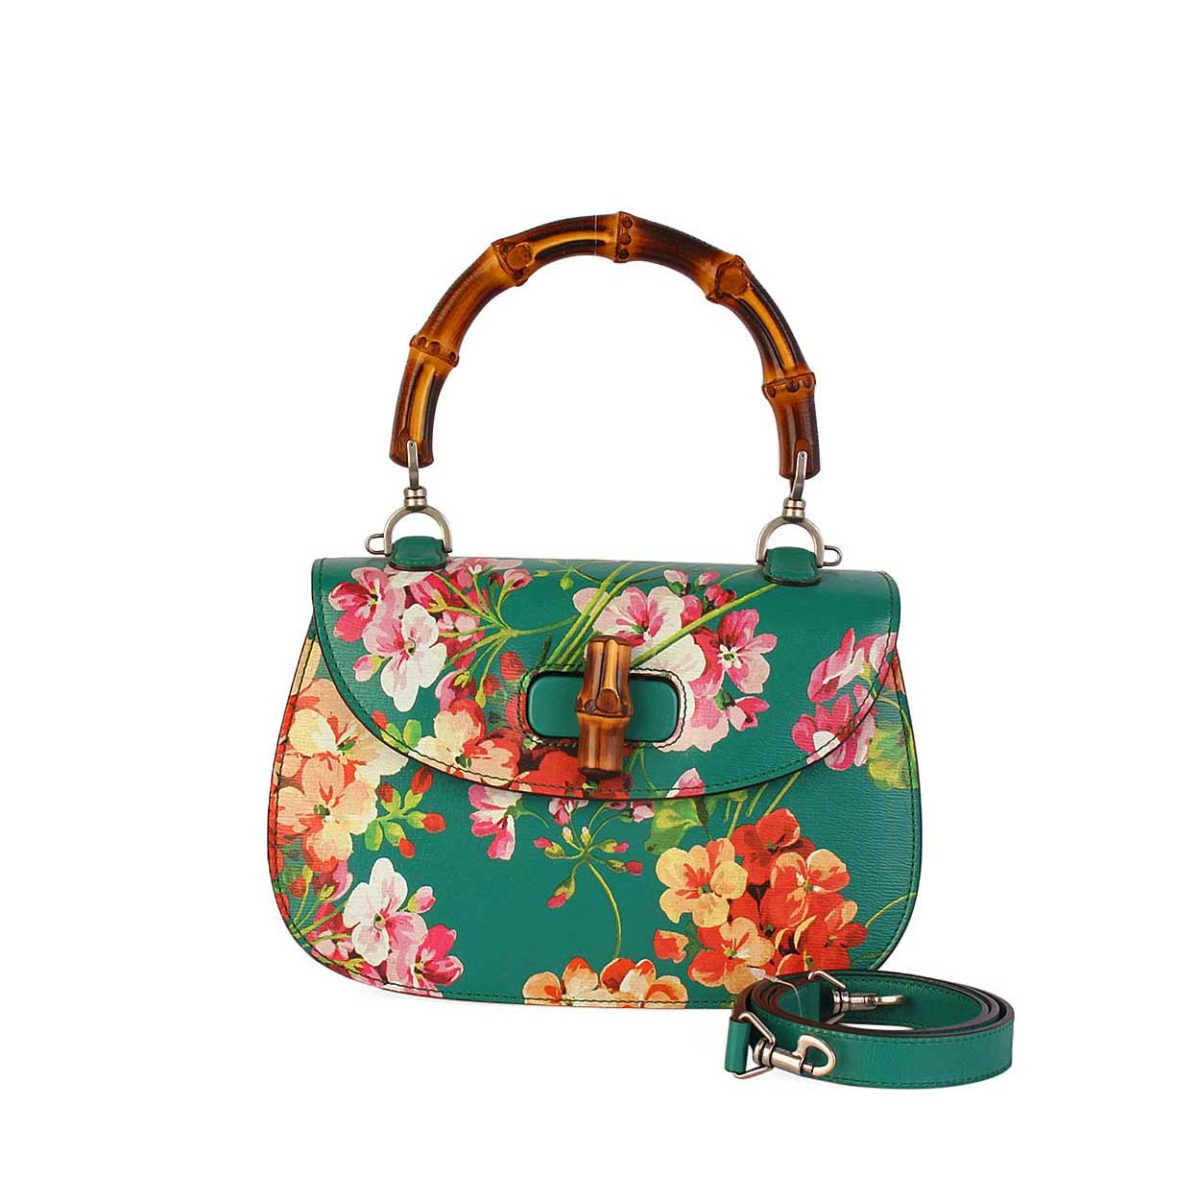 5a55813a47db GUCCI Bamboo Leather Classic Blooms Top Handle Bag Emerald Green ...